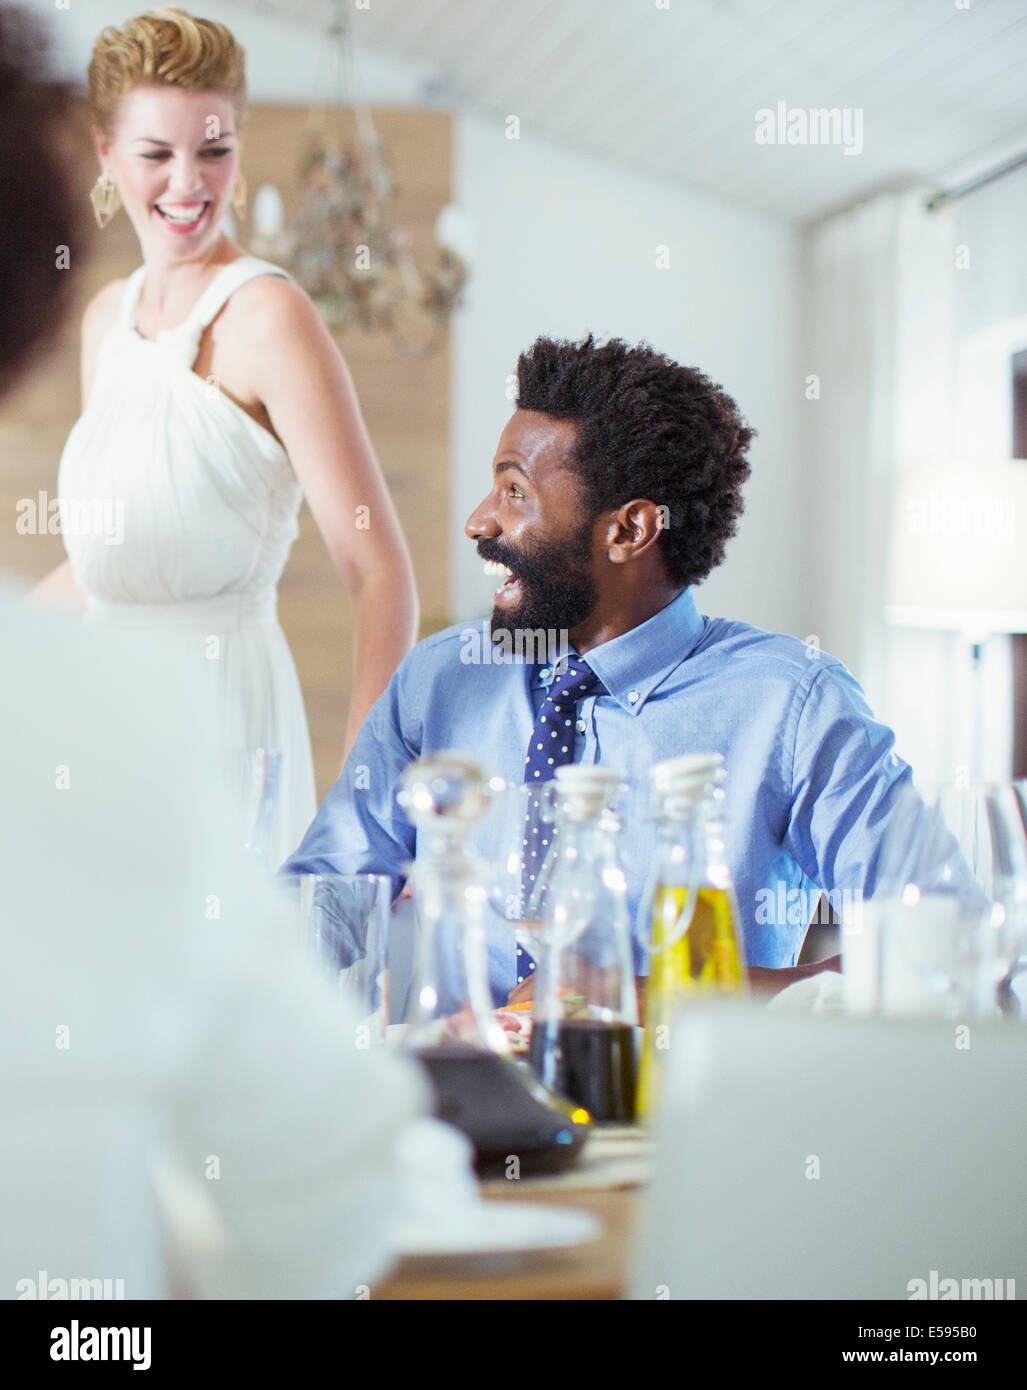 Man laughing at dinner party - Stock Image